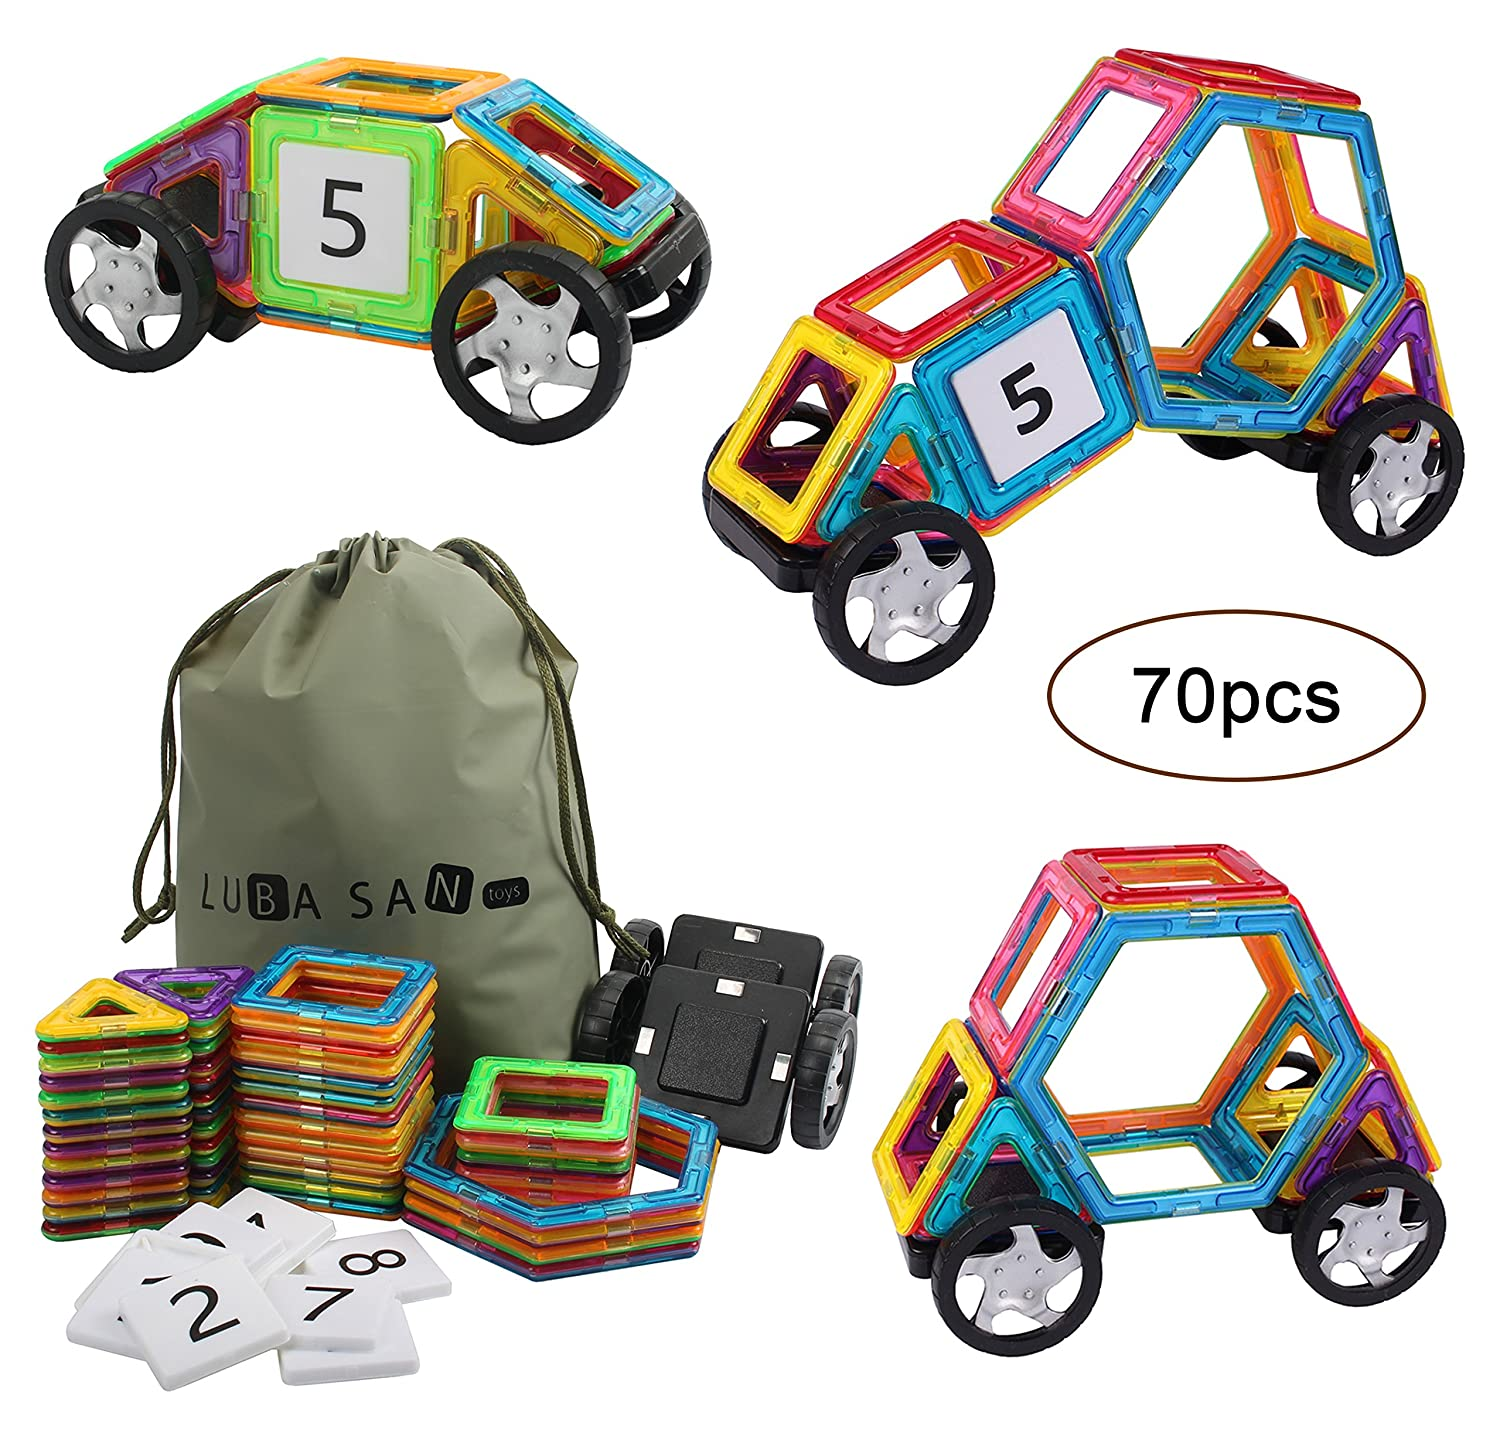 Magnetic Building Blocks Tiles Educational Construction Stacking Toys Set-70PCS with Storage Bag for Boys and Girls.Great Christmas Gift. Review